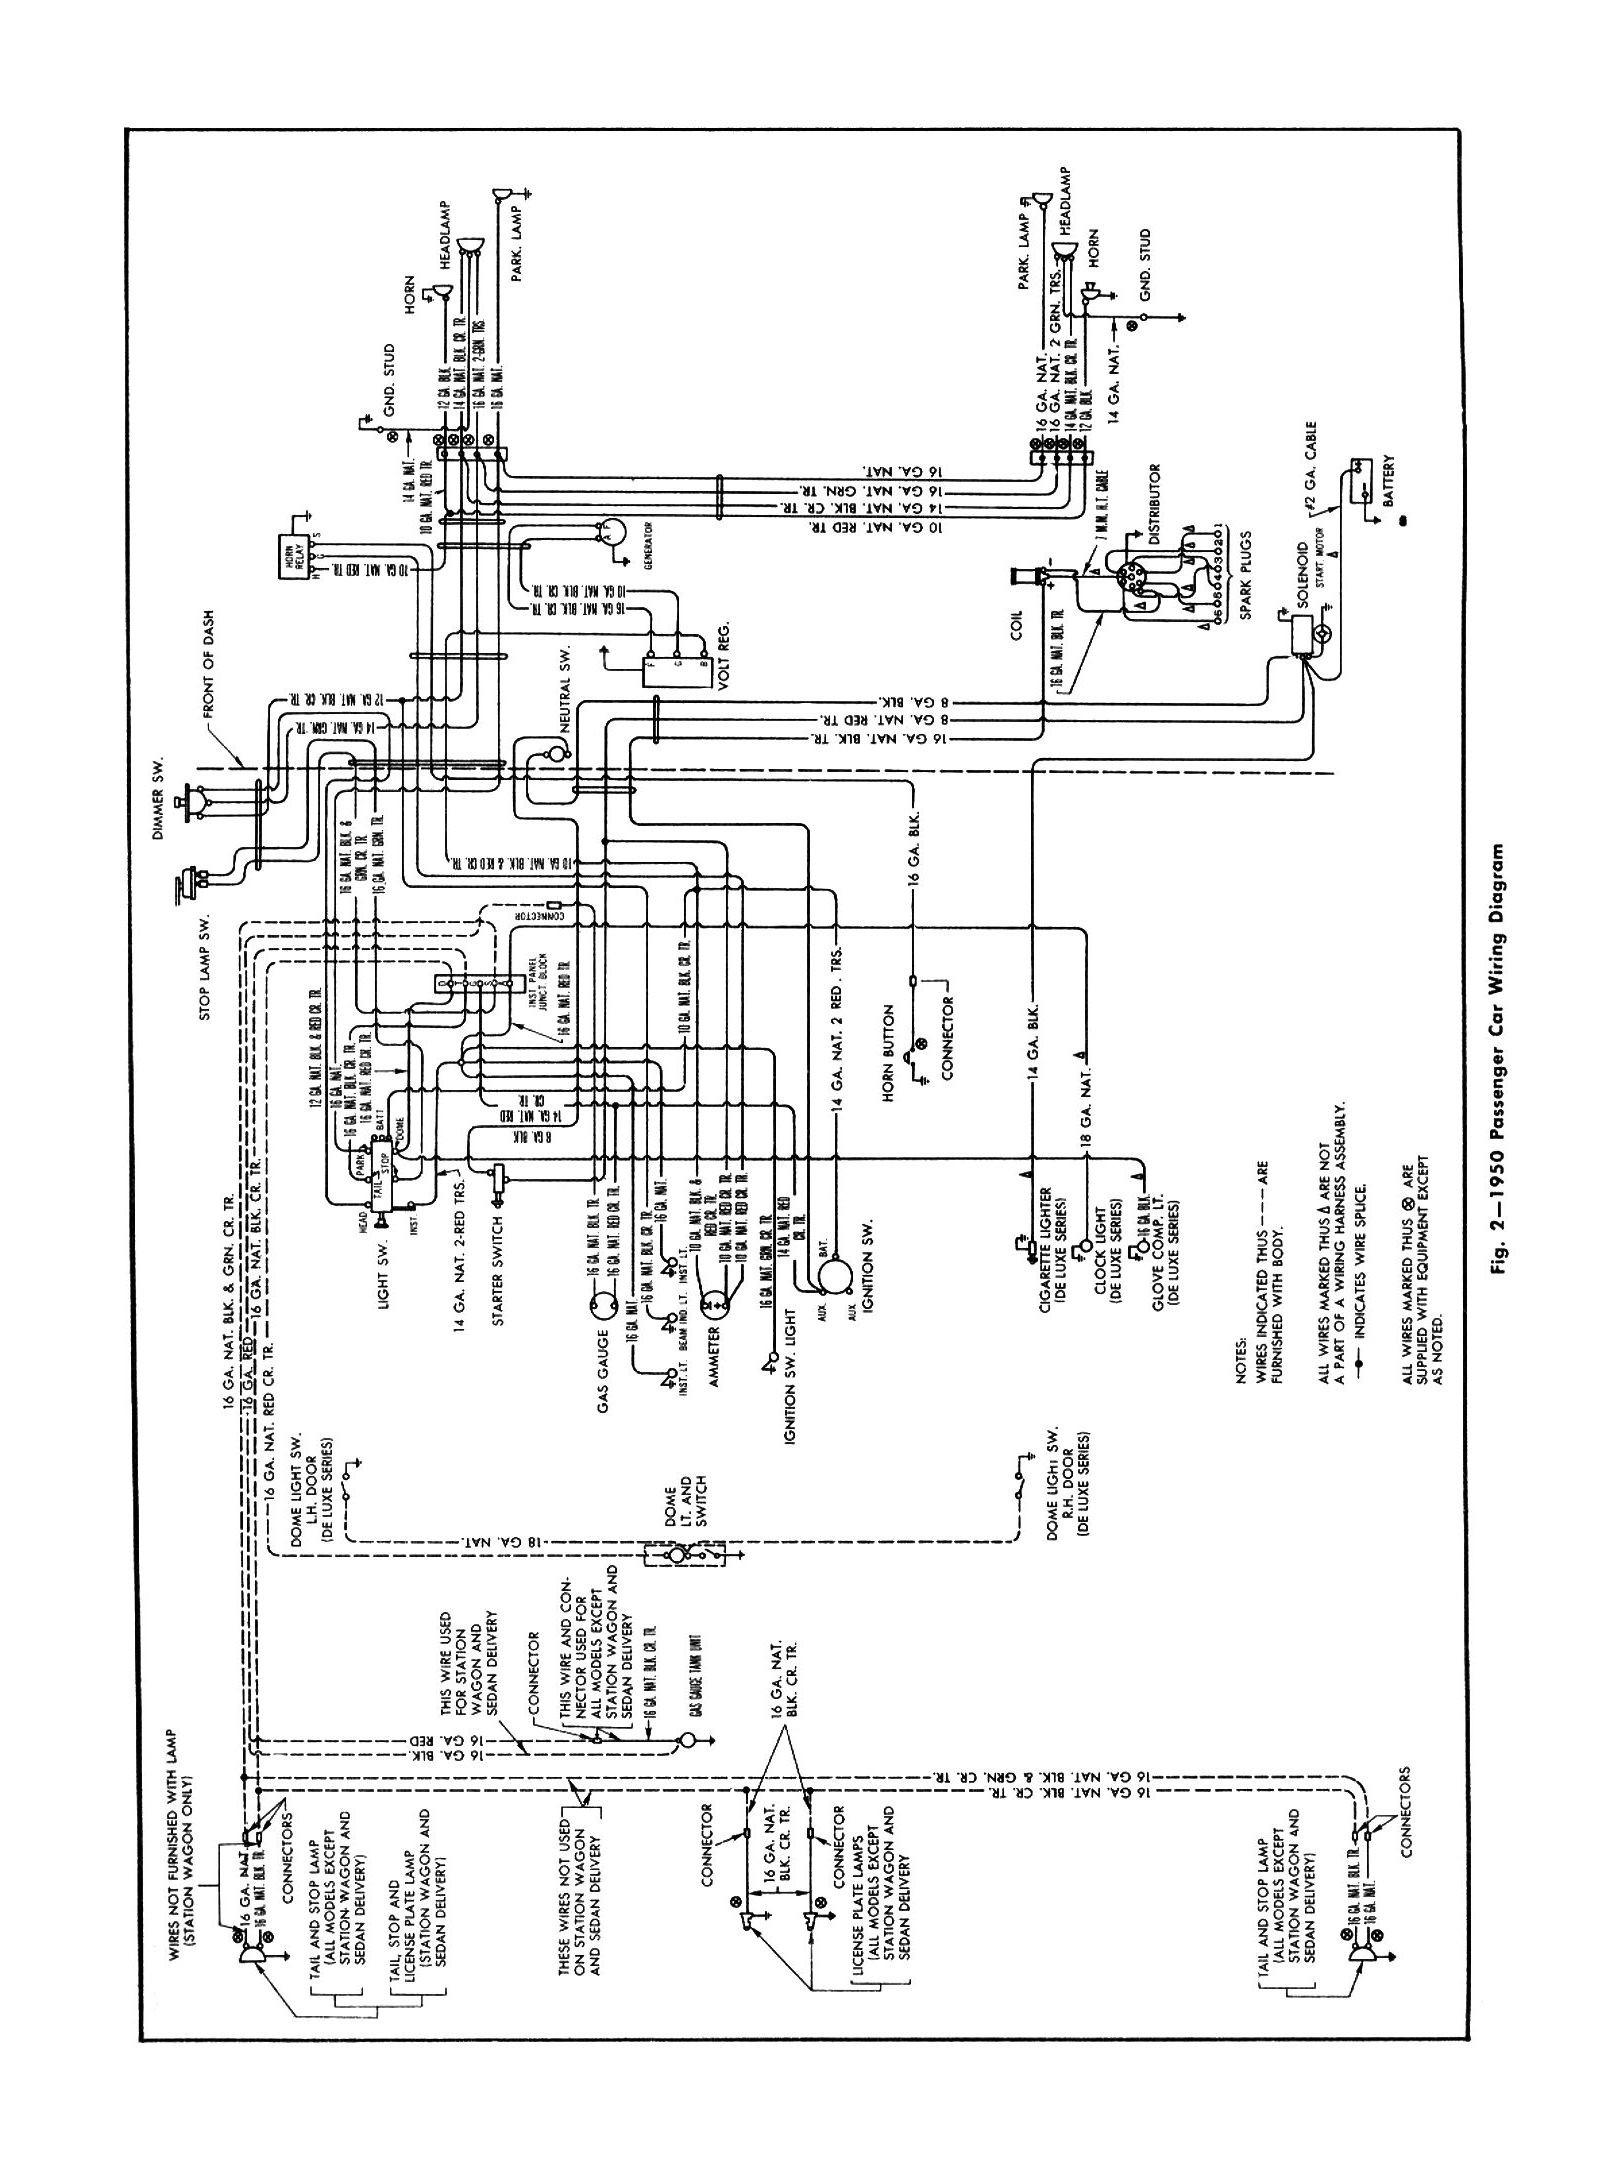 1953 Ford Wiring Diagram Pdf Library Data Module Free Download Schematic Chevy Diagrams Toyota Electrical 1937 Hudson